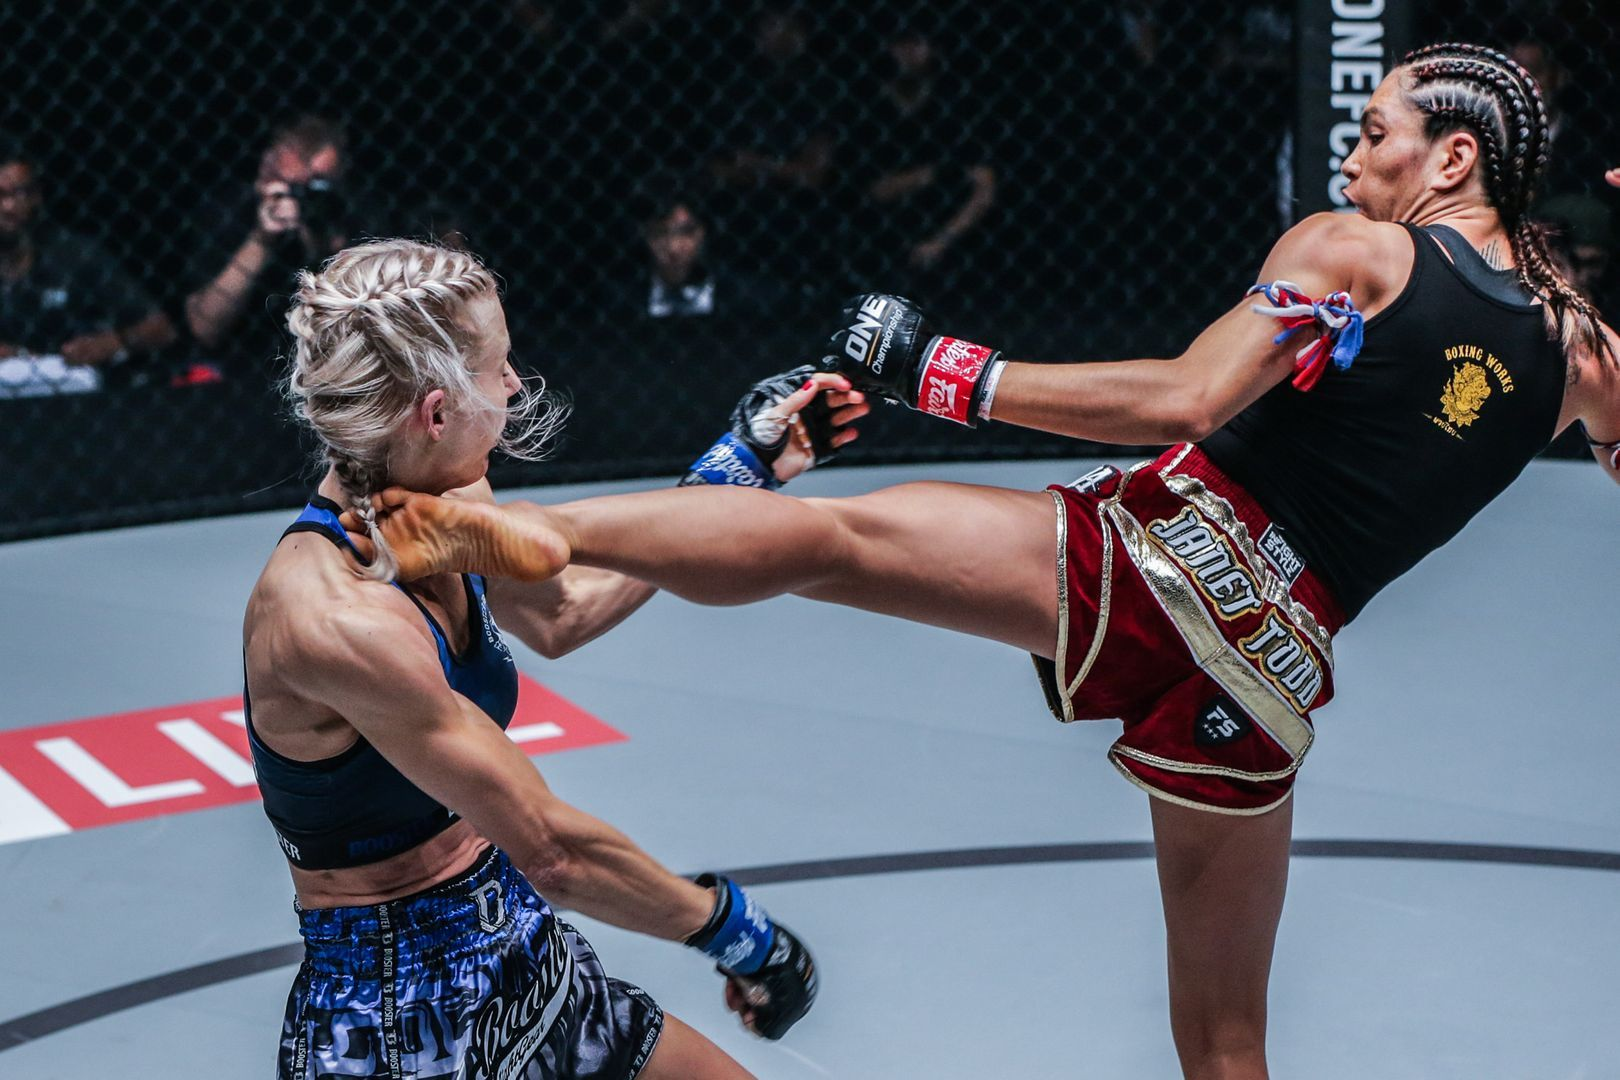 American Janet Todd added to her highlight reel with a head kick KO over Ekaterina Vandaryeva at ONE: CENTURY in Tokyo.